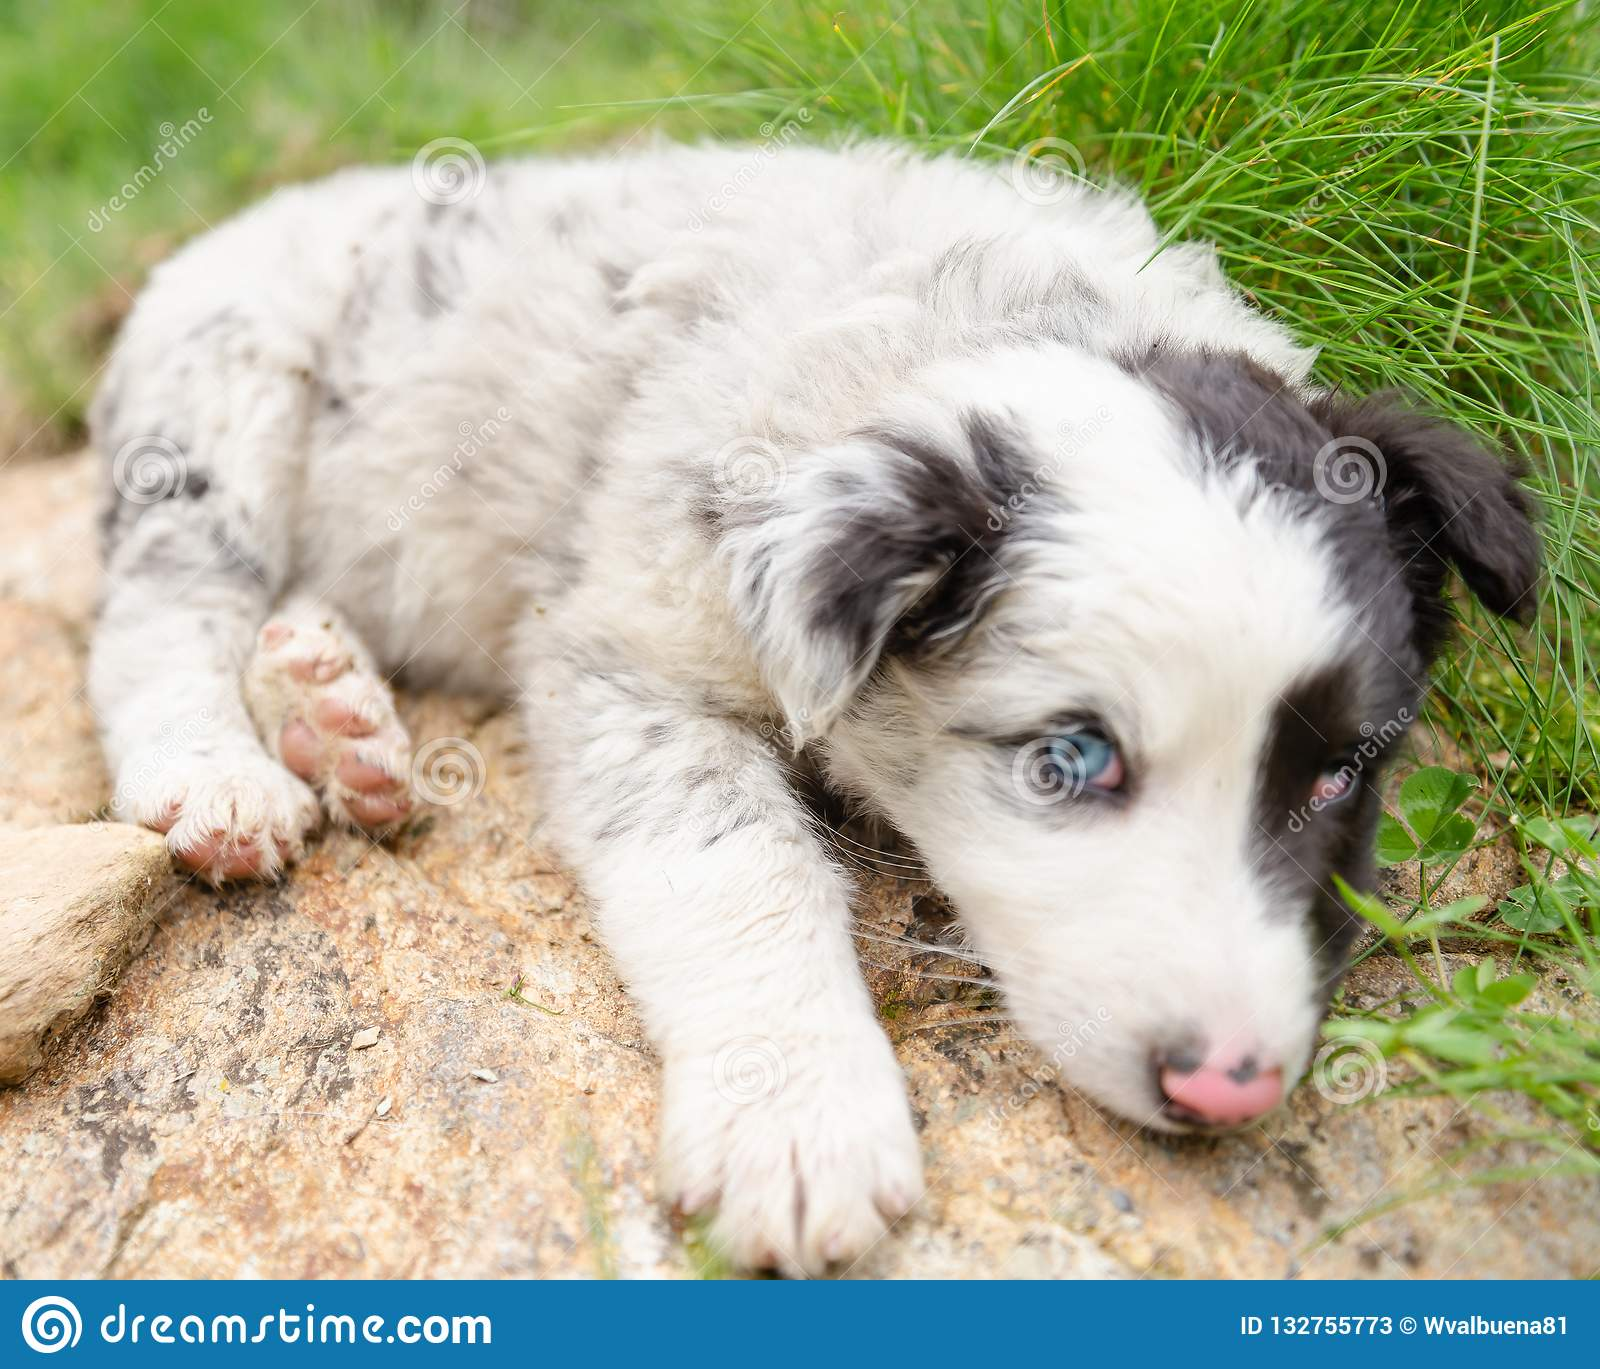 Cute and small puppy dog lying on a rocks